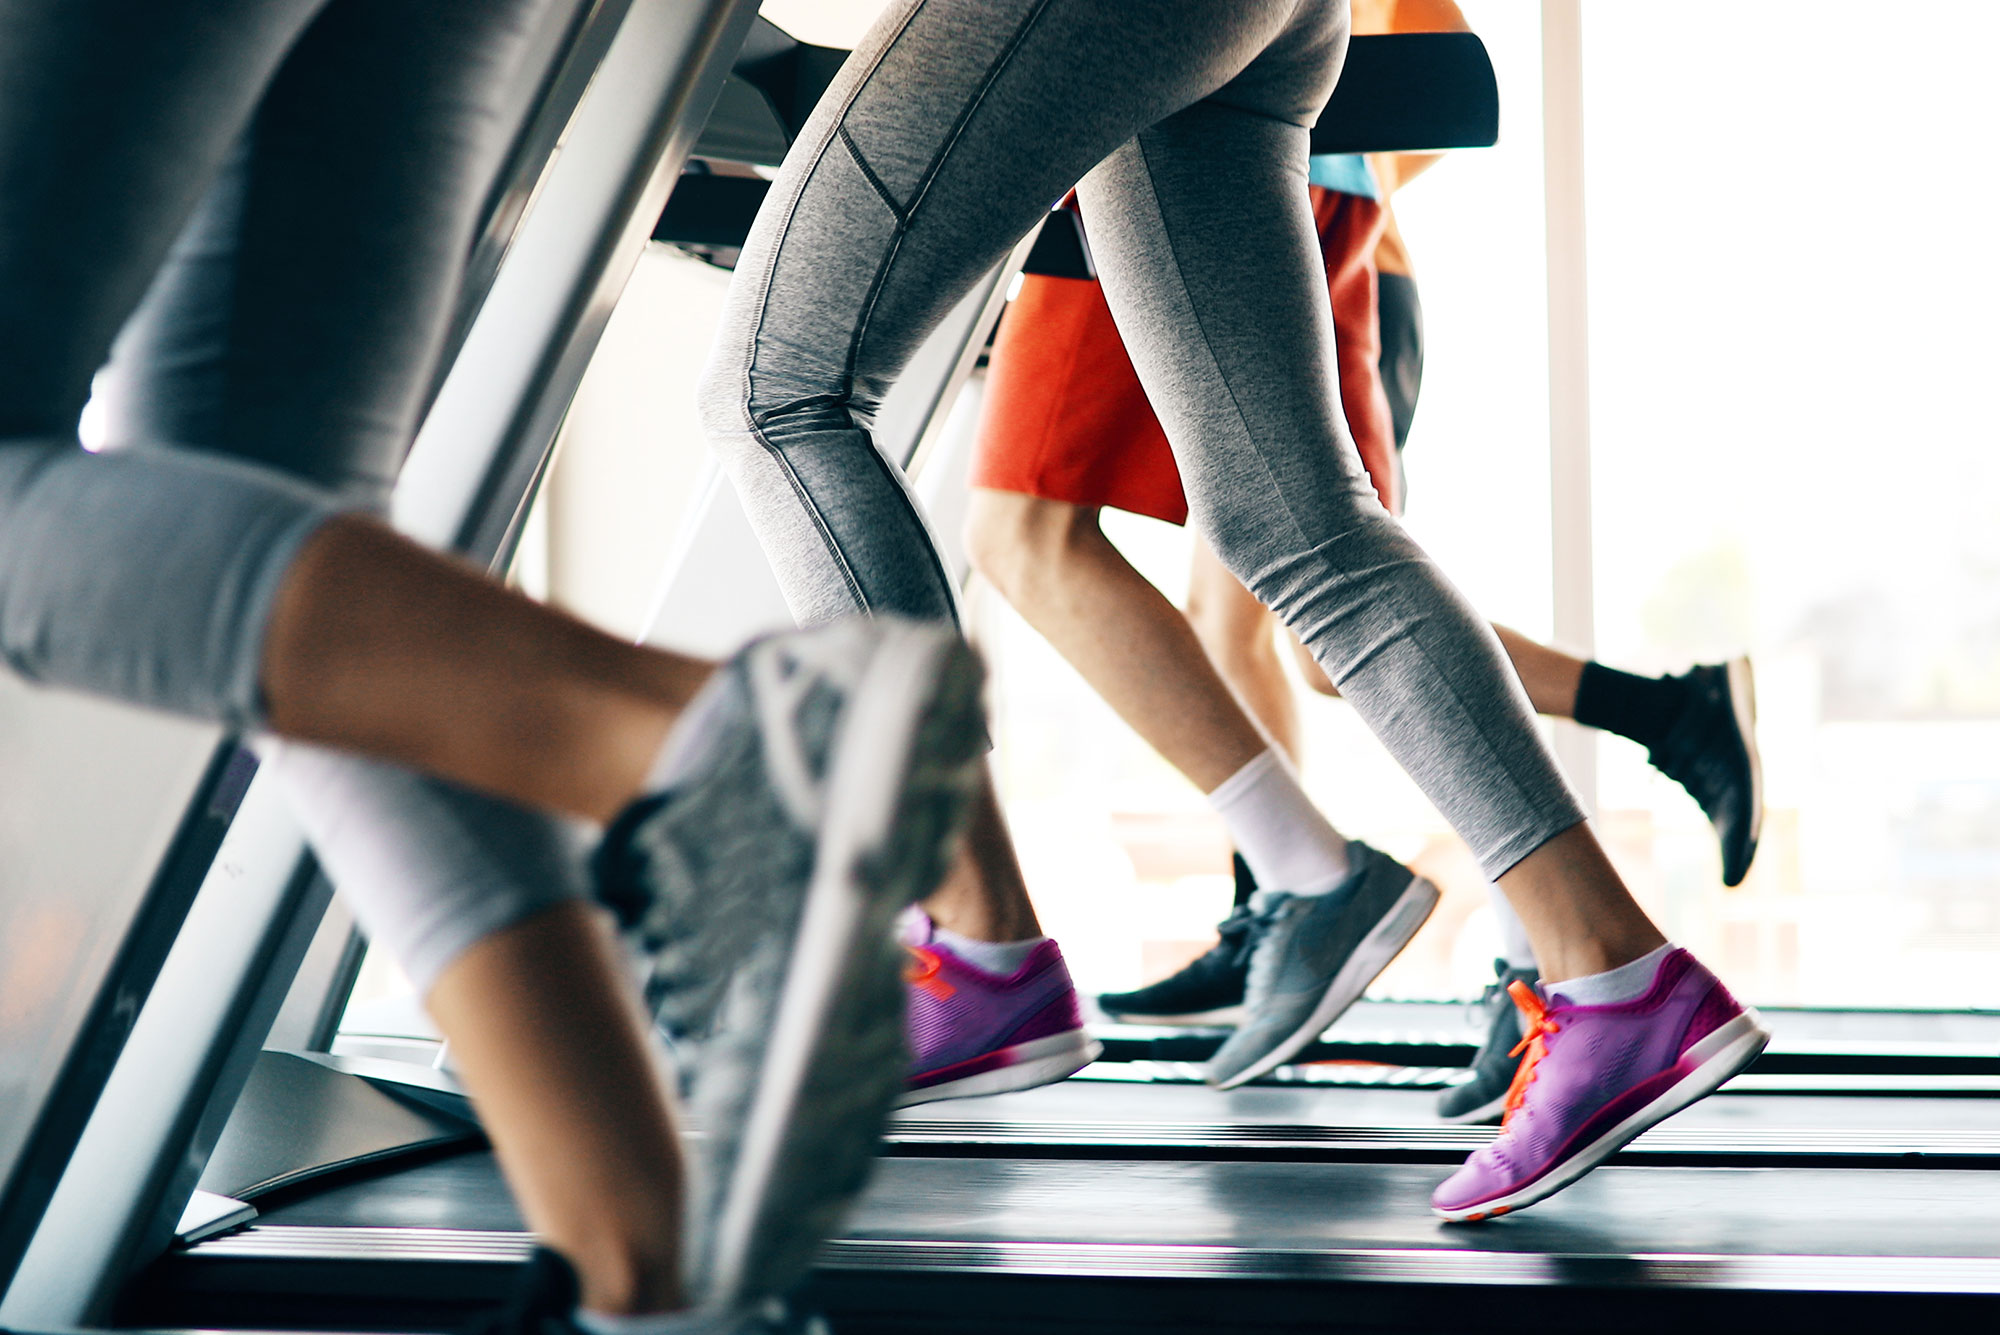 10,000 Steps Or Intense Workouts? This Is What Works Better